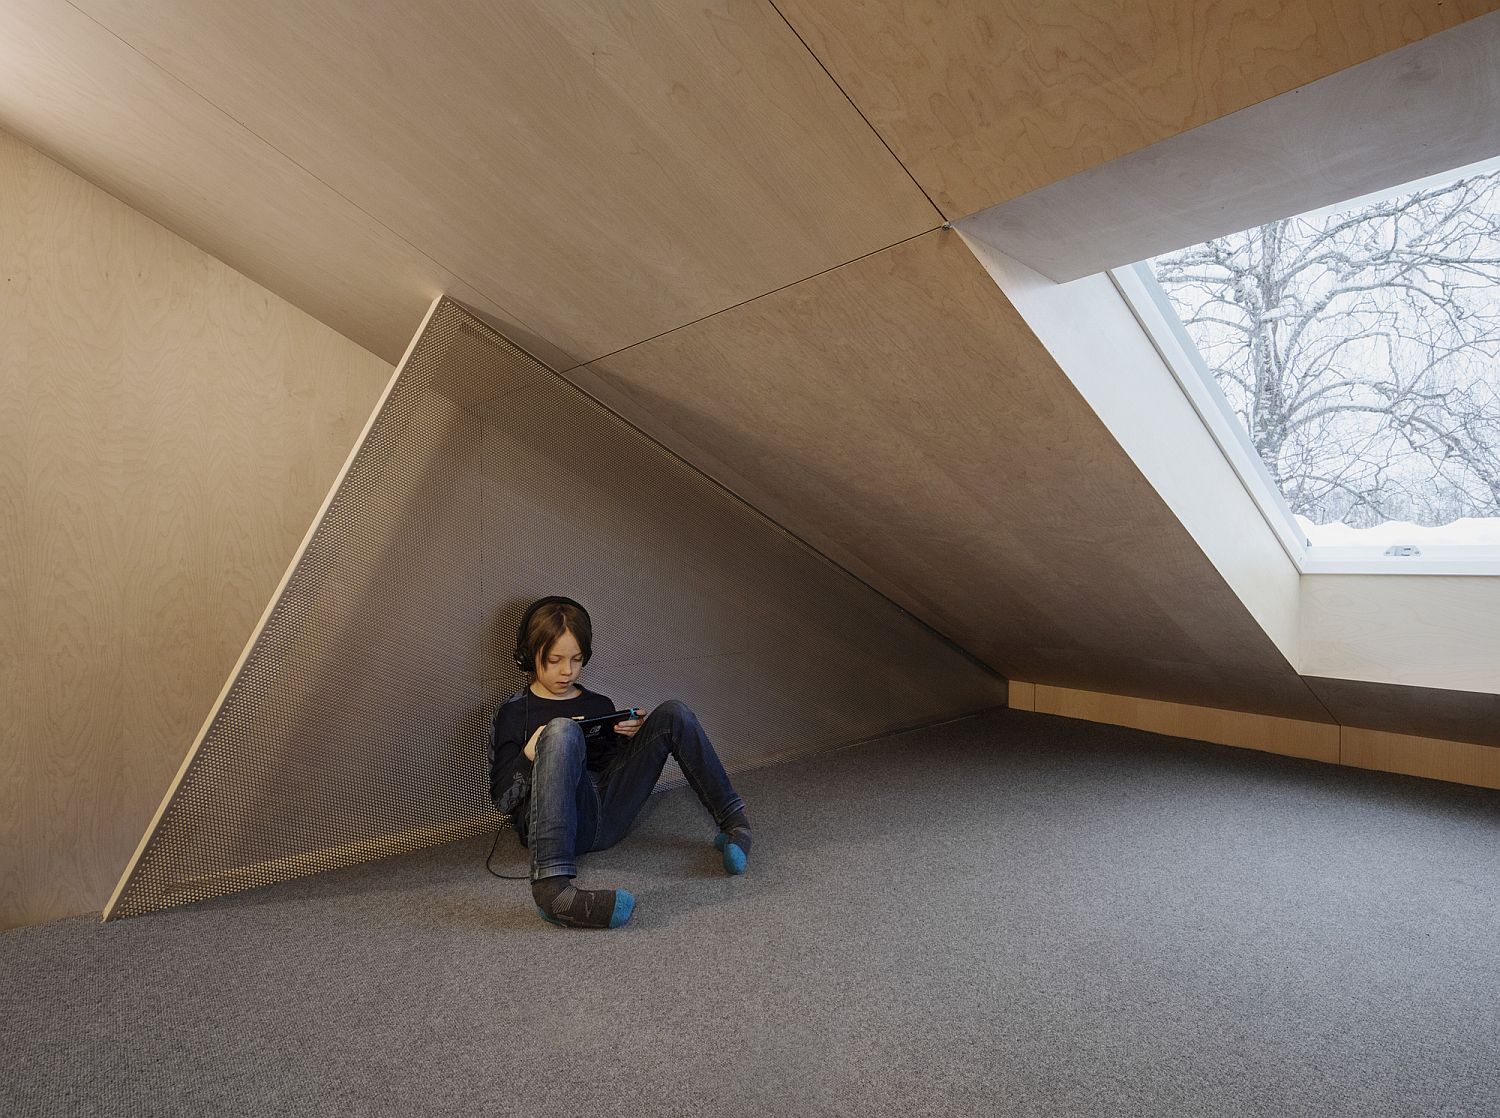 Attic-level-of-the-house-with-limited-space